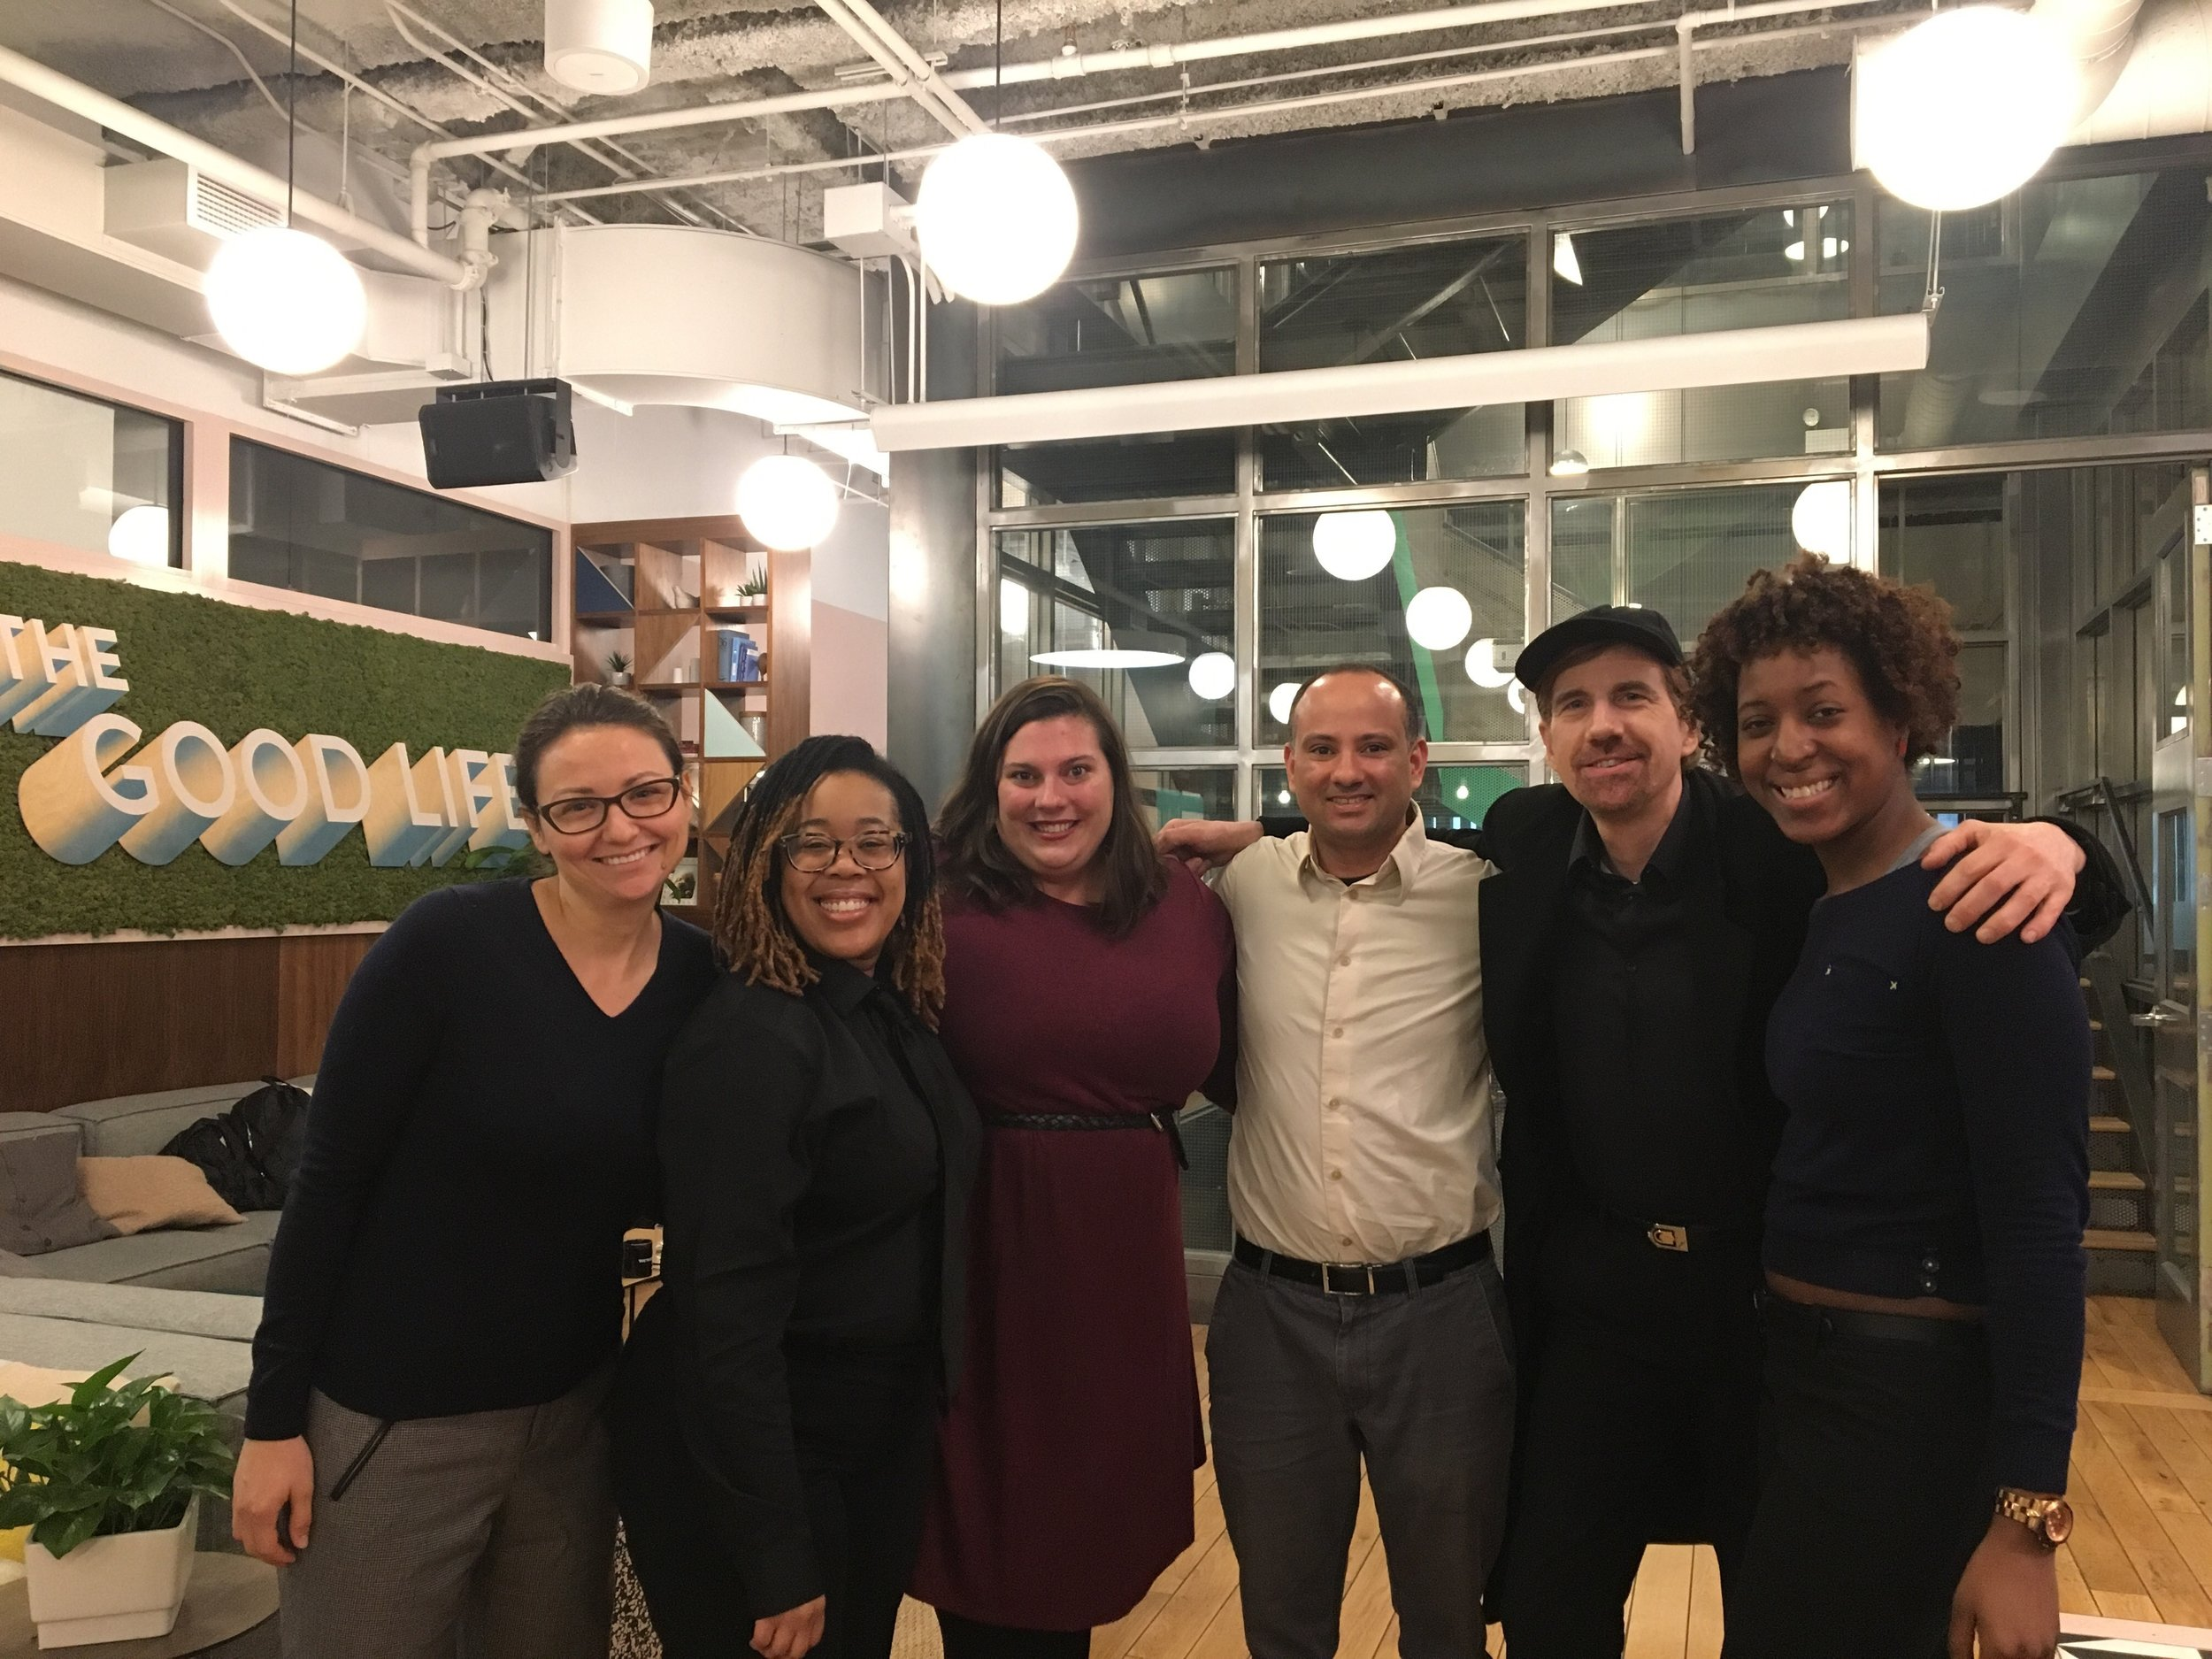 Jamie (in maroon) pictured here with members of our Chicago team at a recent coffee talk.